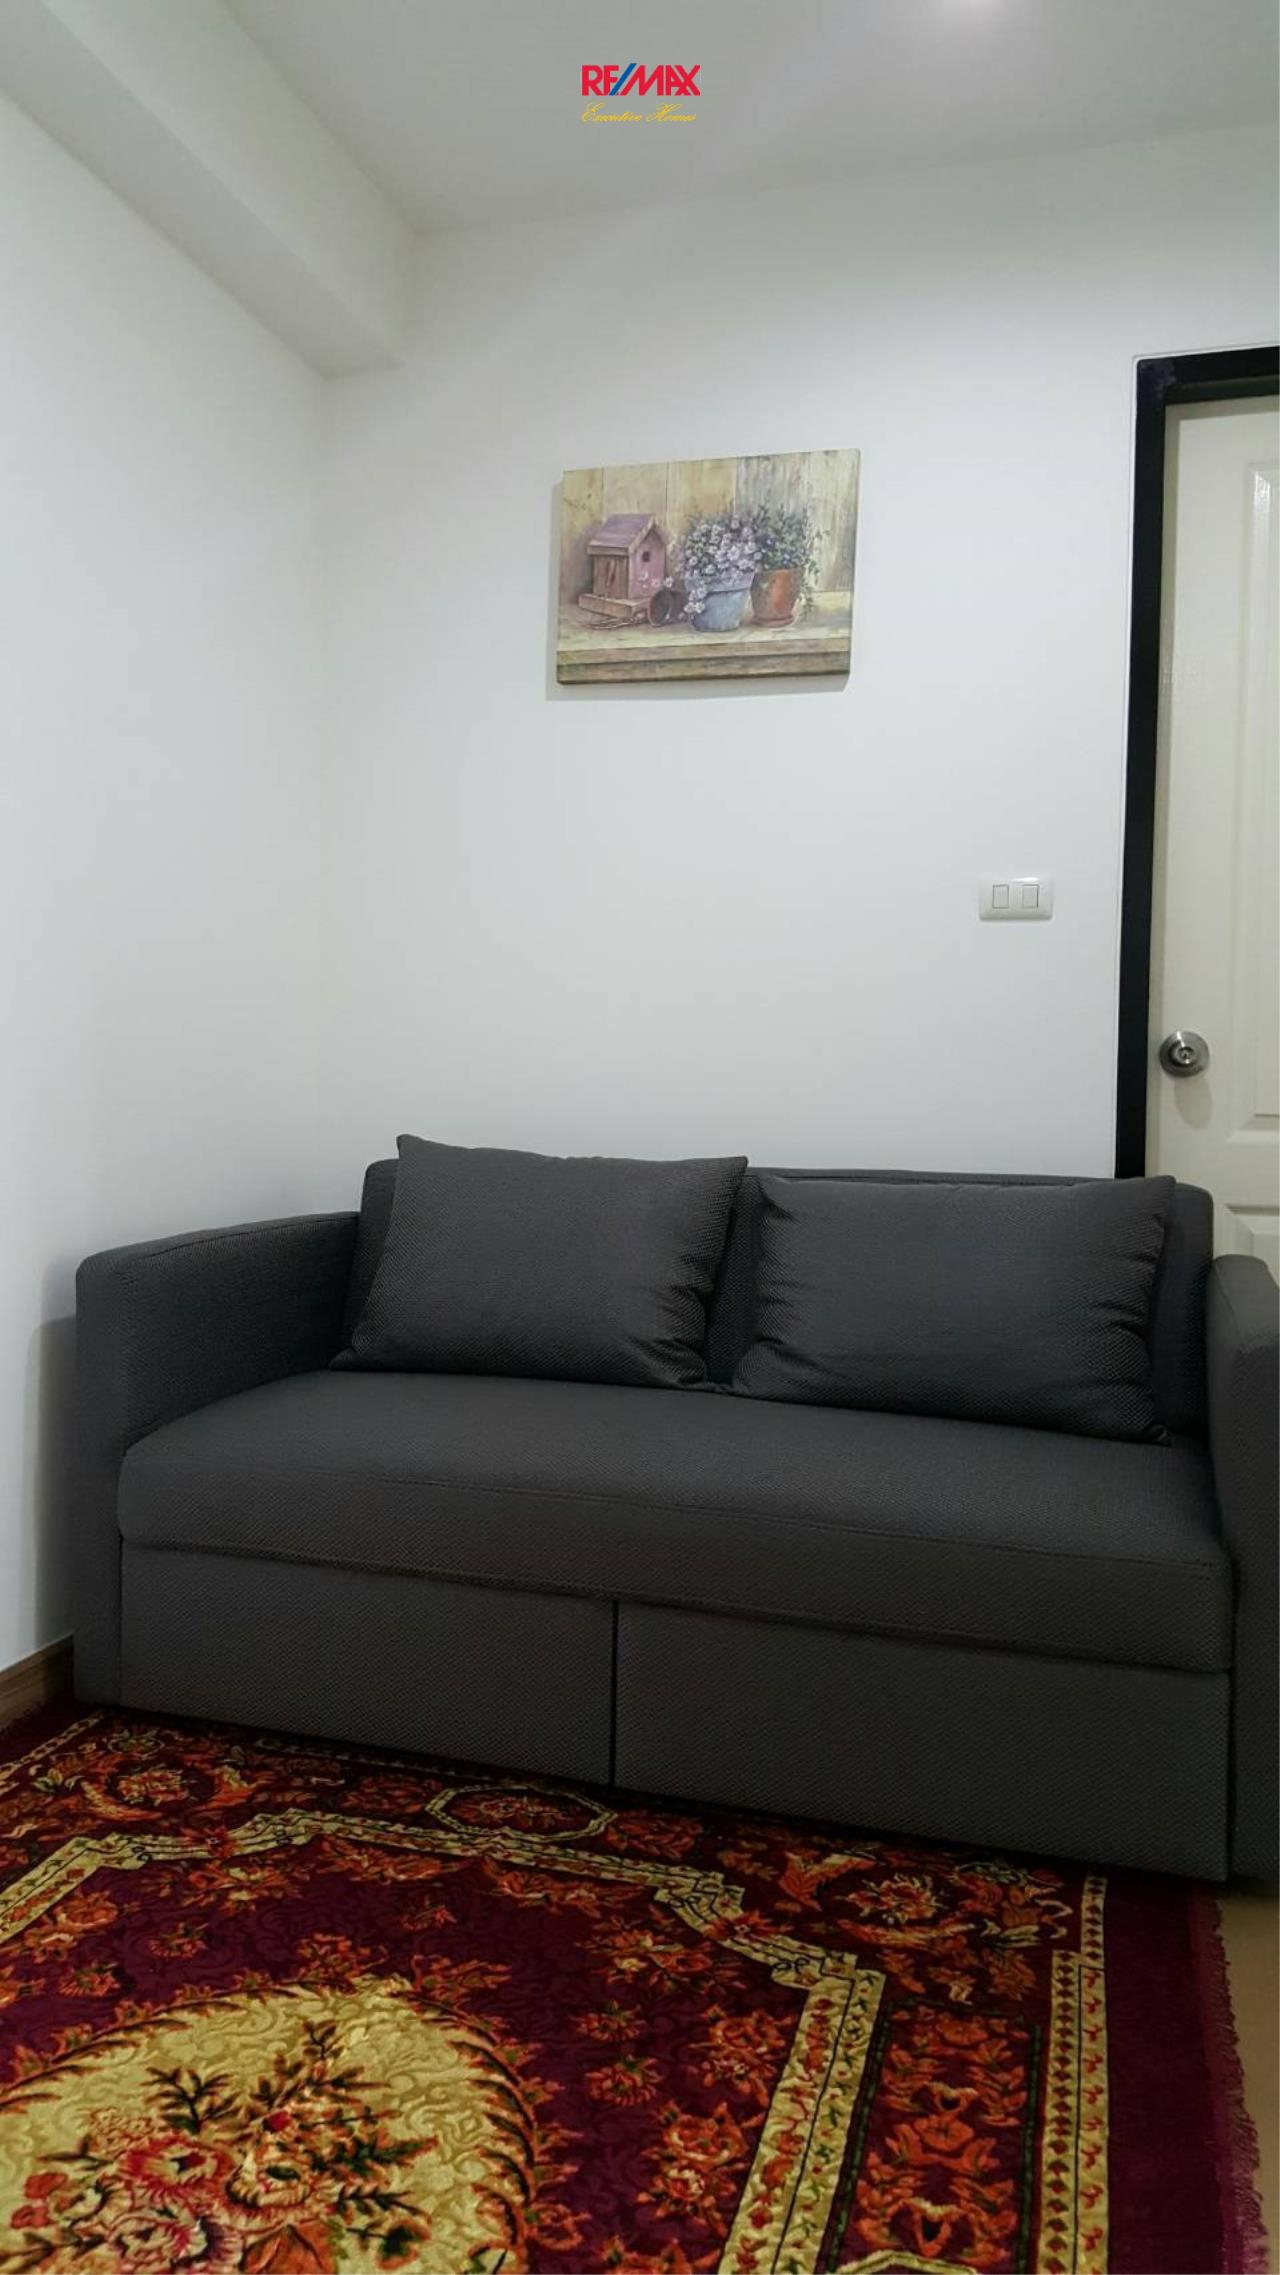 RE/MAX Executive Homes Agency's Nice 1 Bedroom for Rent and Sale Bangkok Feliz 69 2